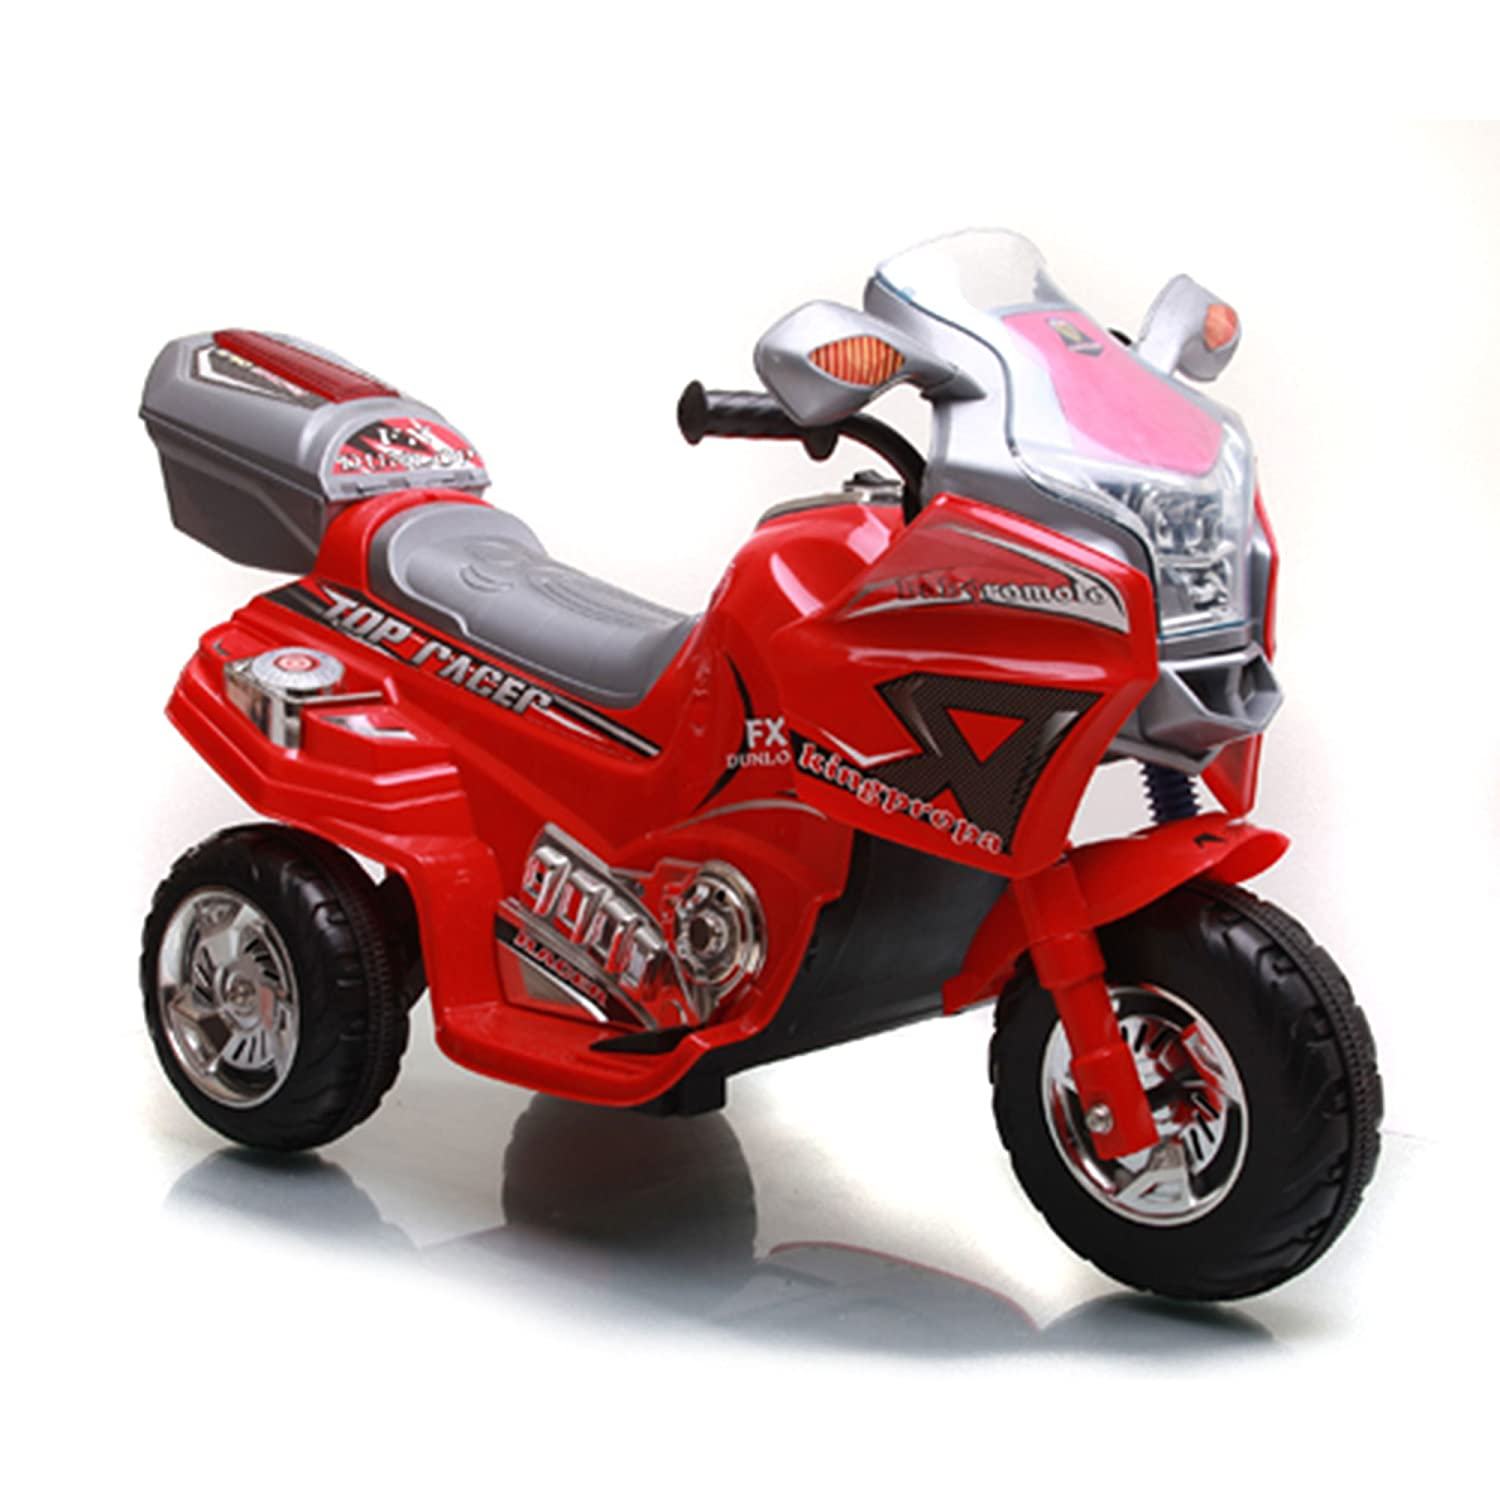 Ride On Toy 3 Wheel Motorcycle Trike For Kids Battery Motor Wiring Diagram Powered By Lil Rider Toys Boys And Girls